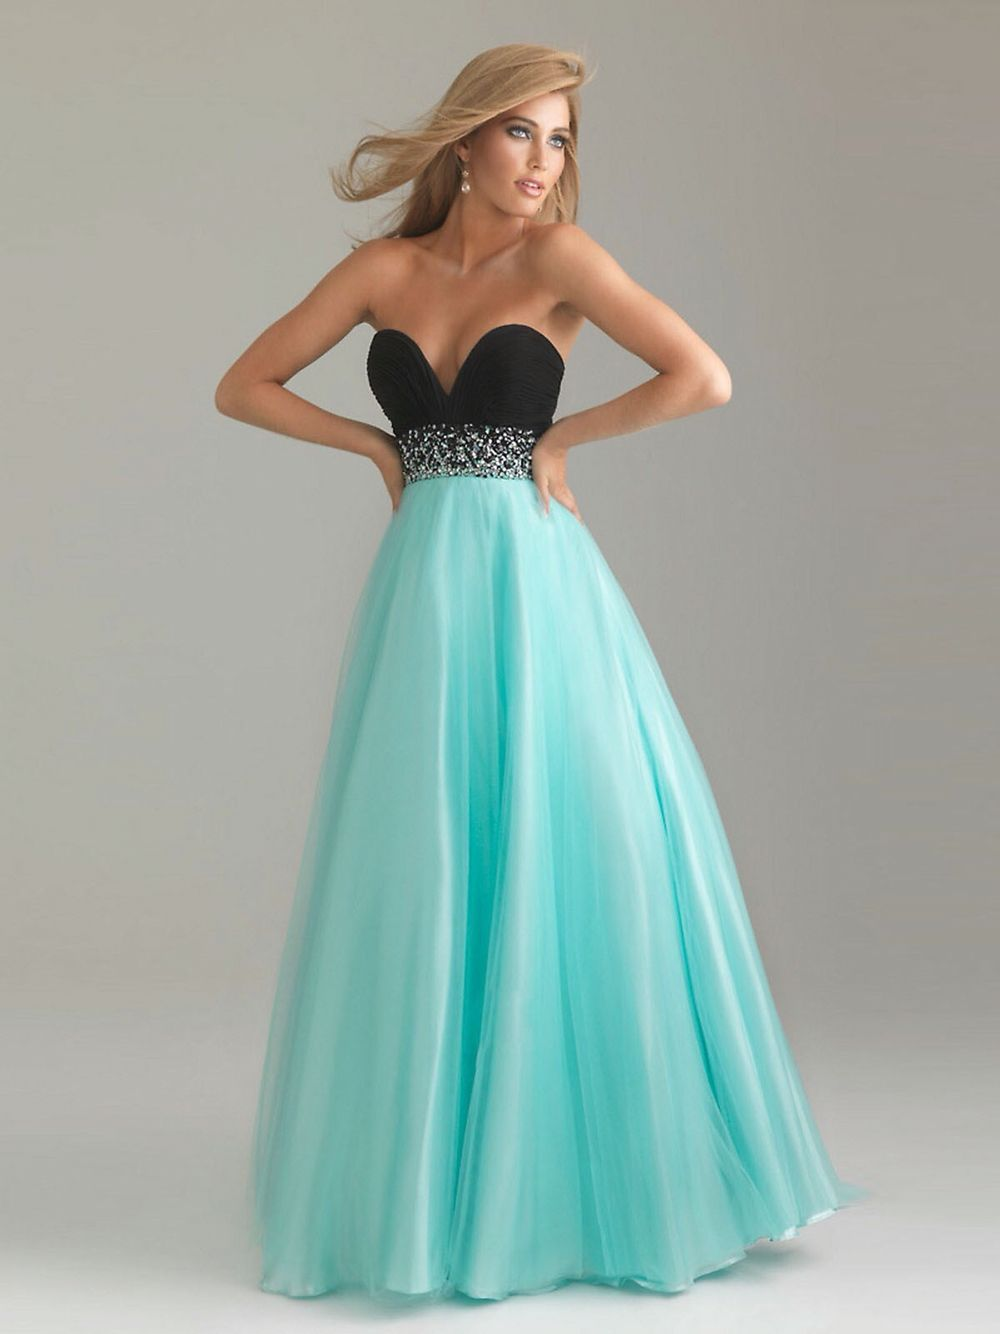 Perfect prom dress! | vestidos | Pinterest | Perfect prom dress and Prom